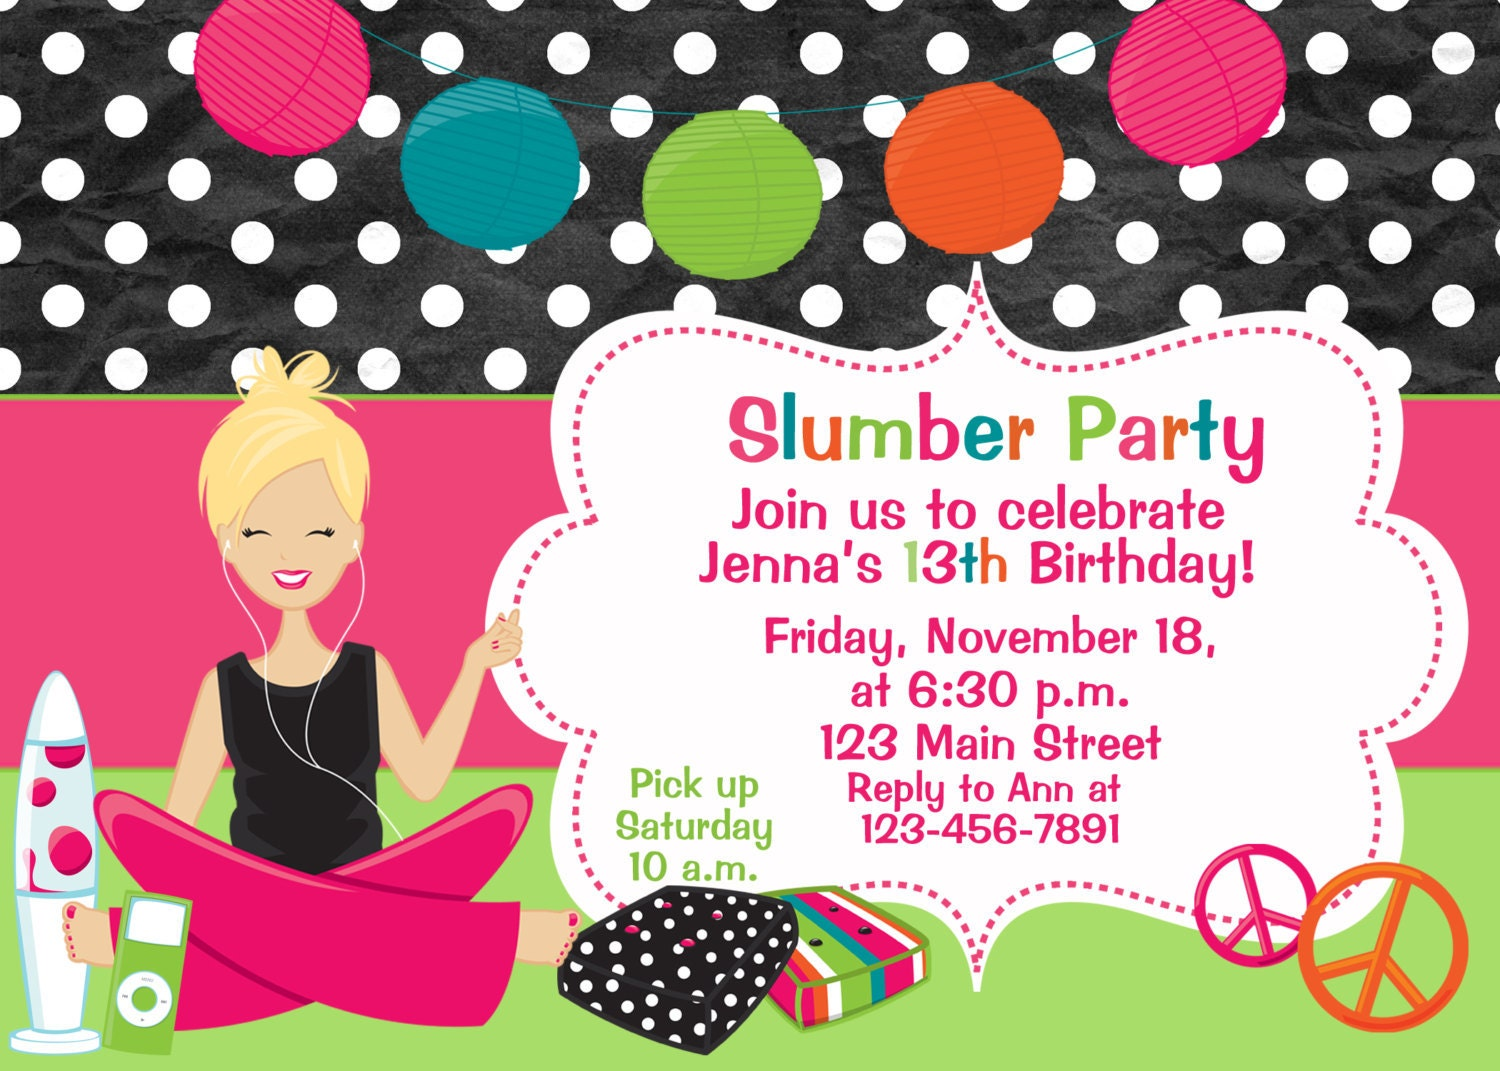 Pj Party Invitation Wording - Free Printable Invitation Design Ideas ...